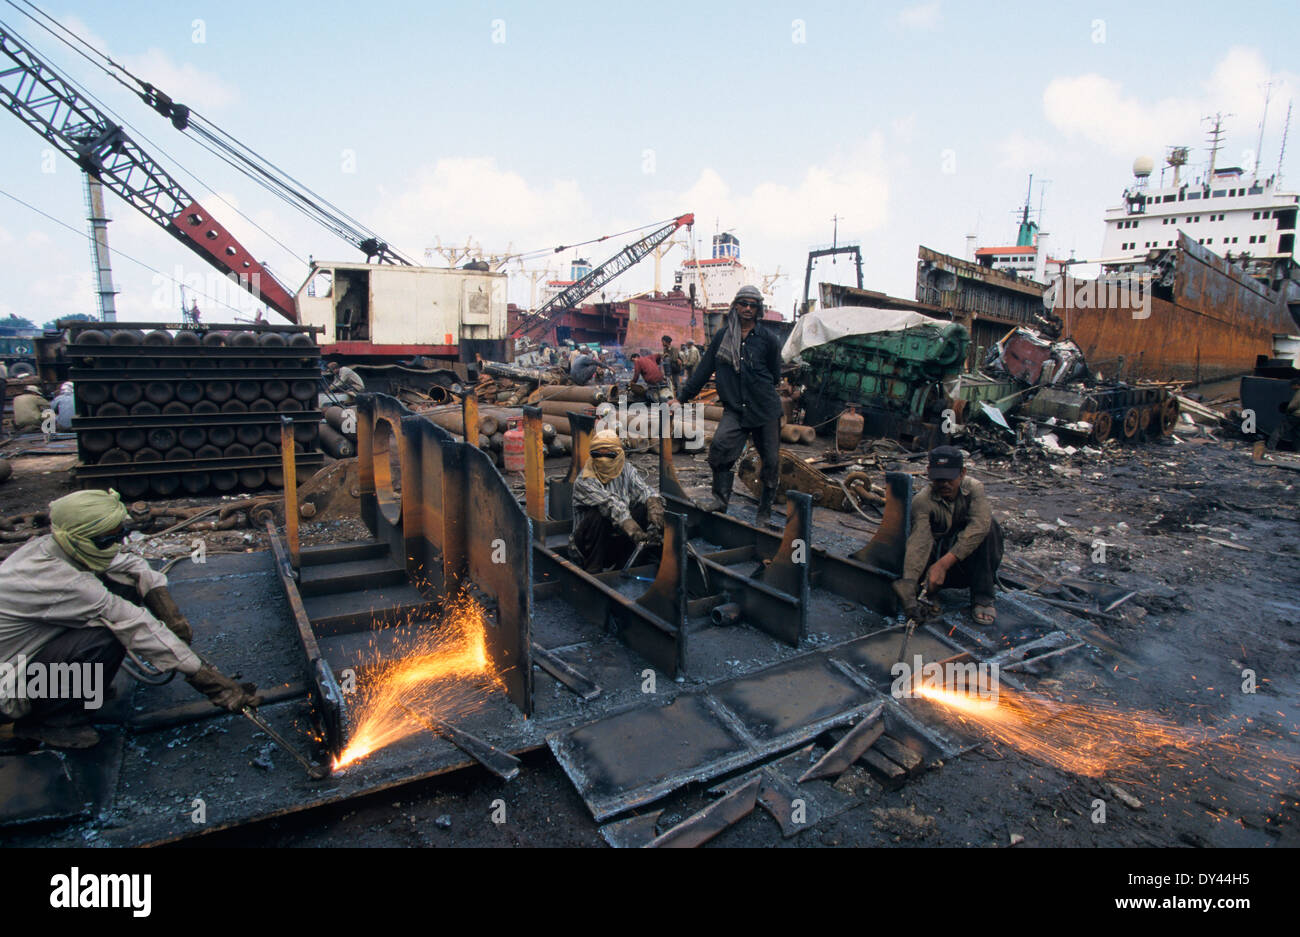 INDIA Mumbai, ship breaking yard in harbor area, cargo ships will be